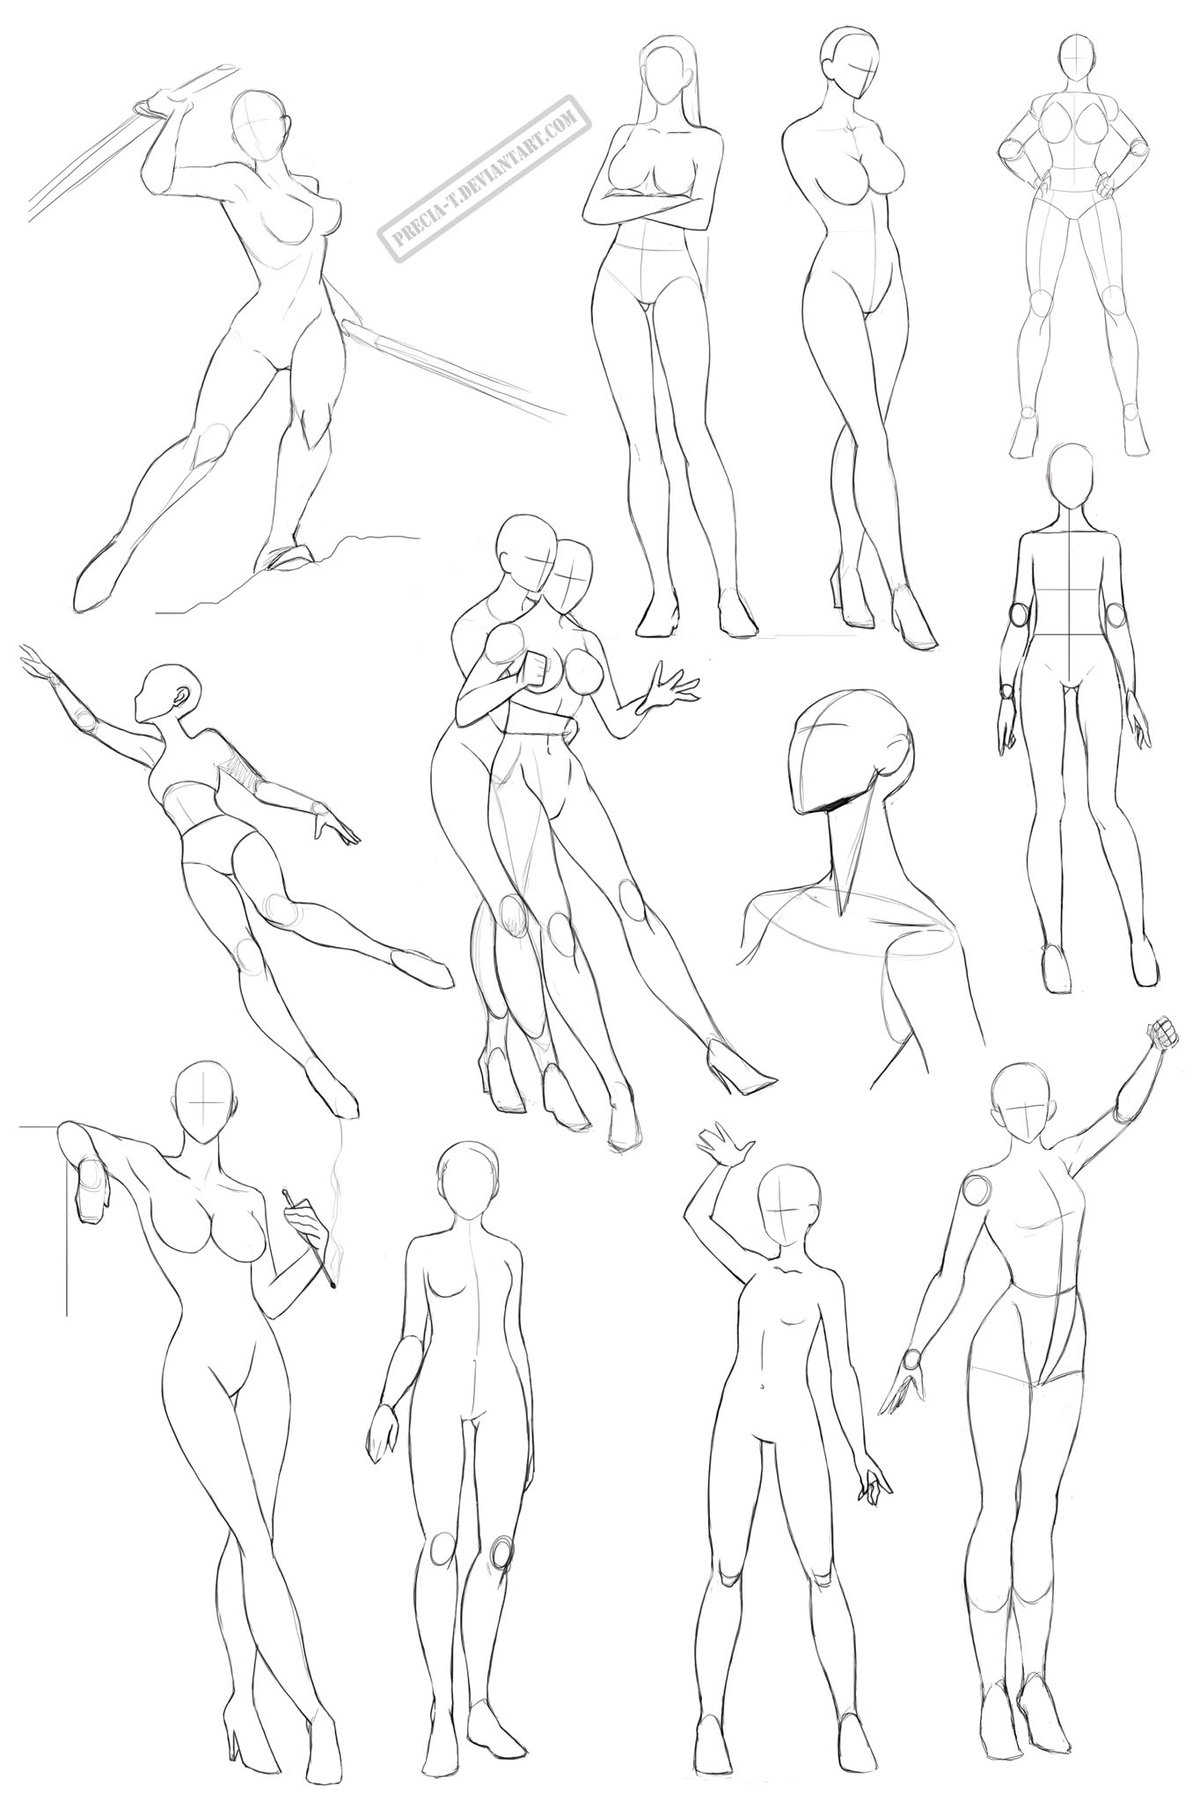 Pin by михаил on draw cartoons pinterest cartoon anime poses pose reference